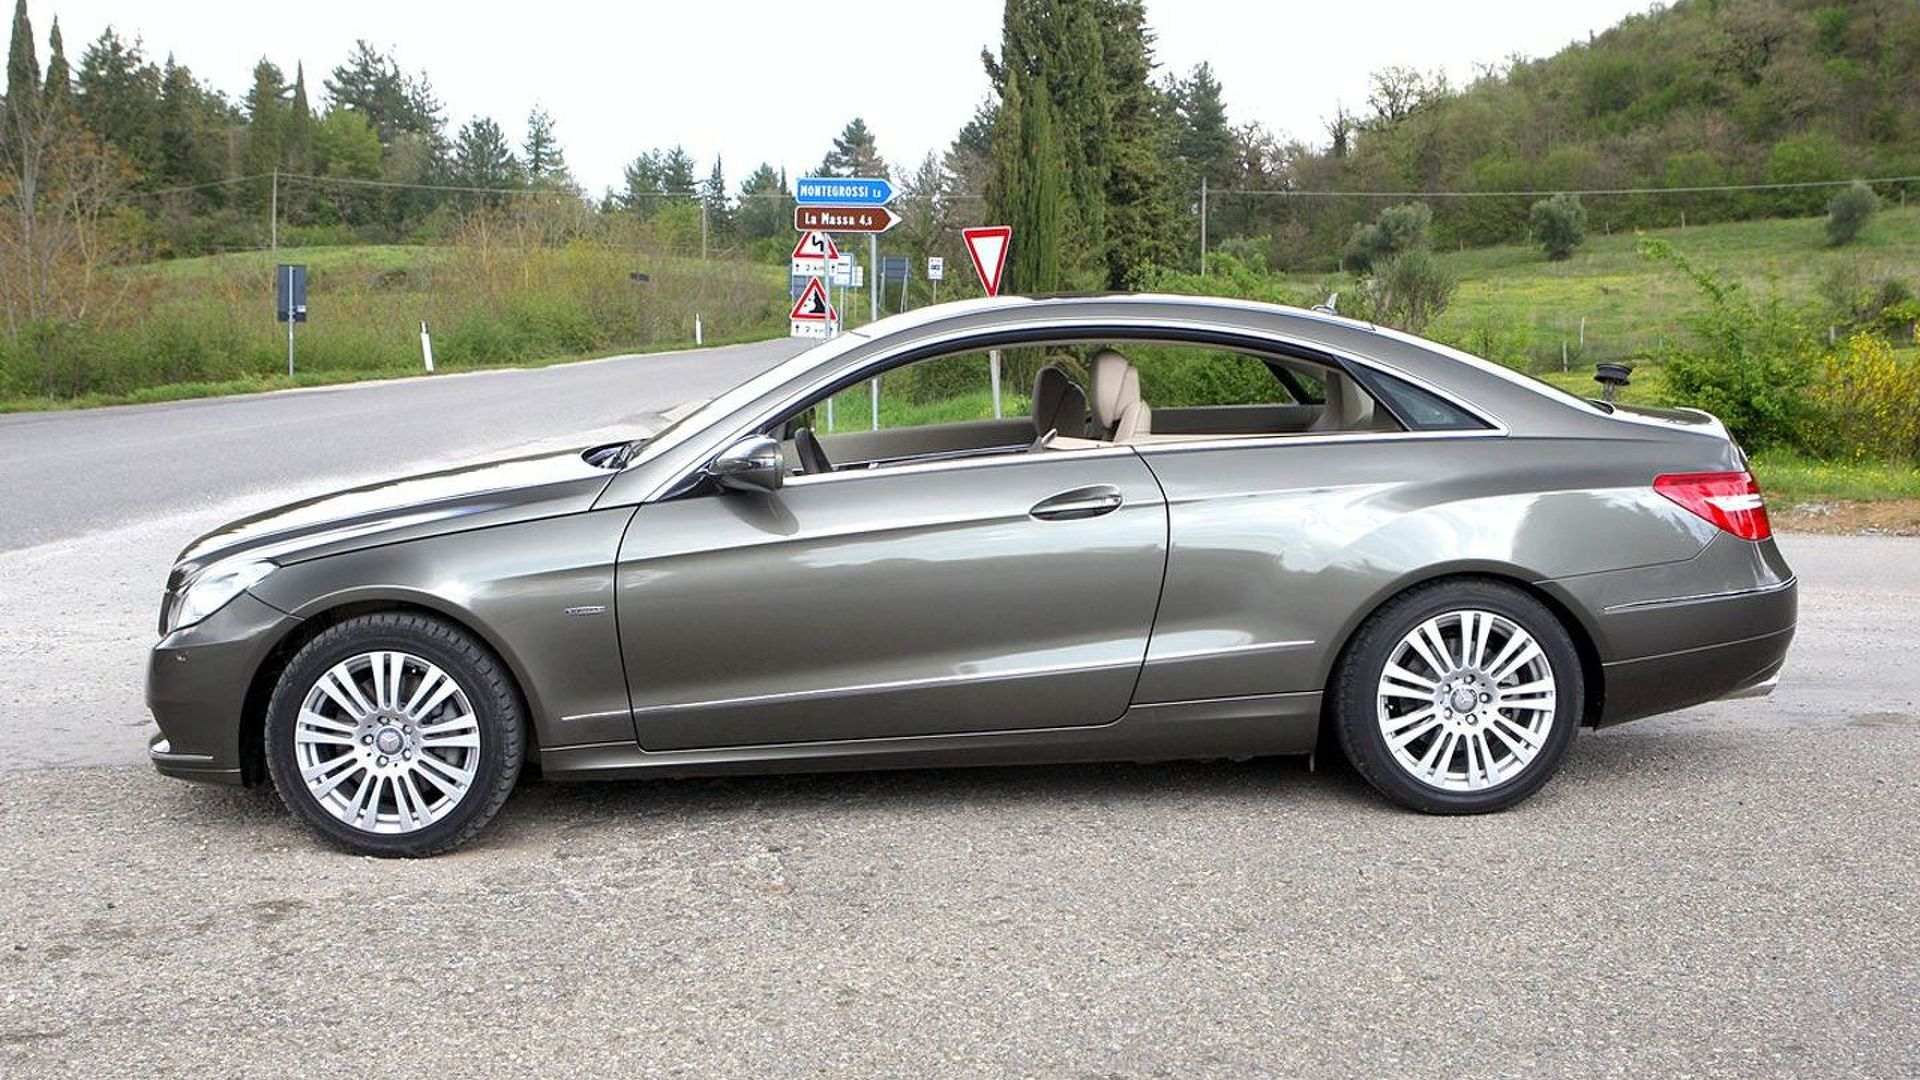 2010 mercedes e class coupe is based on w204 c class platform